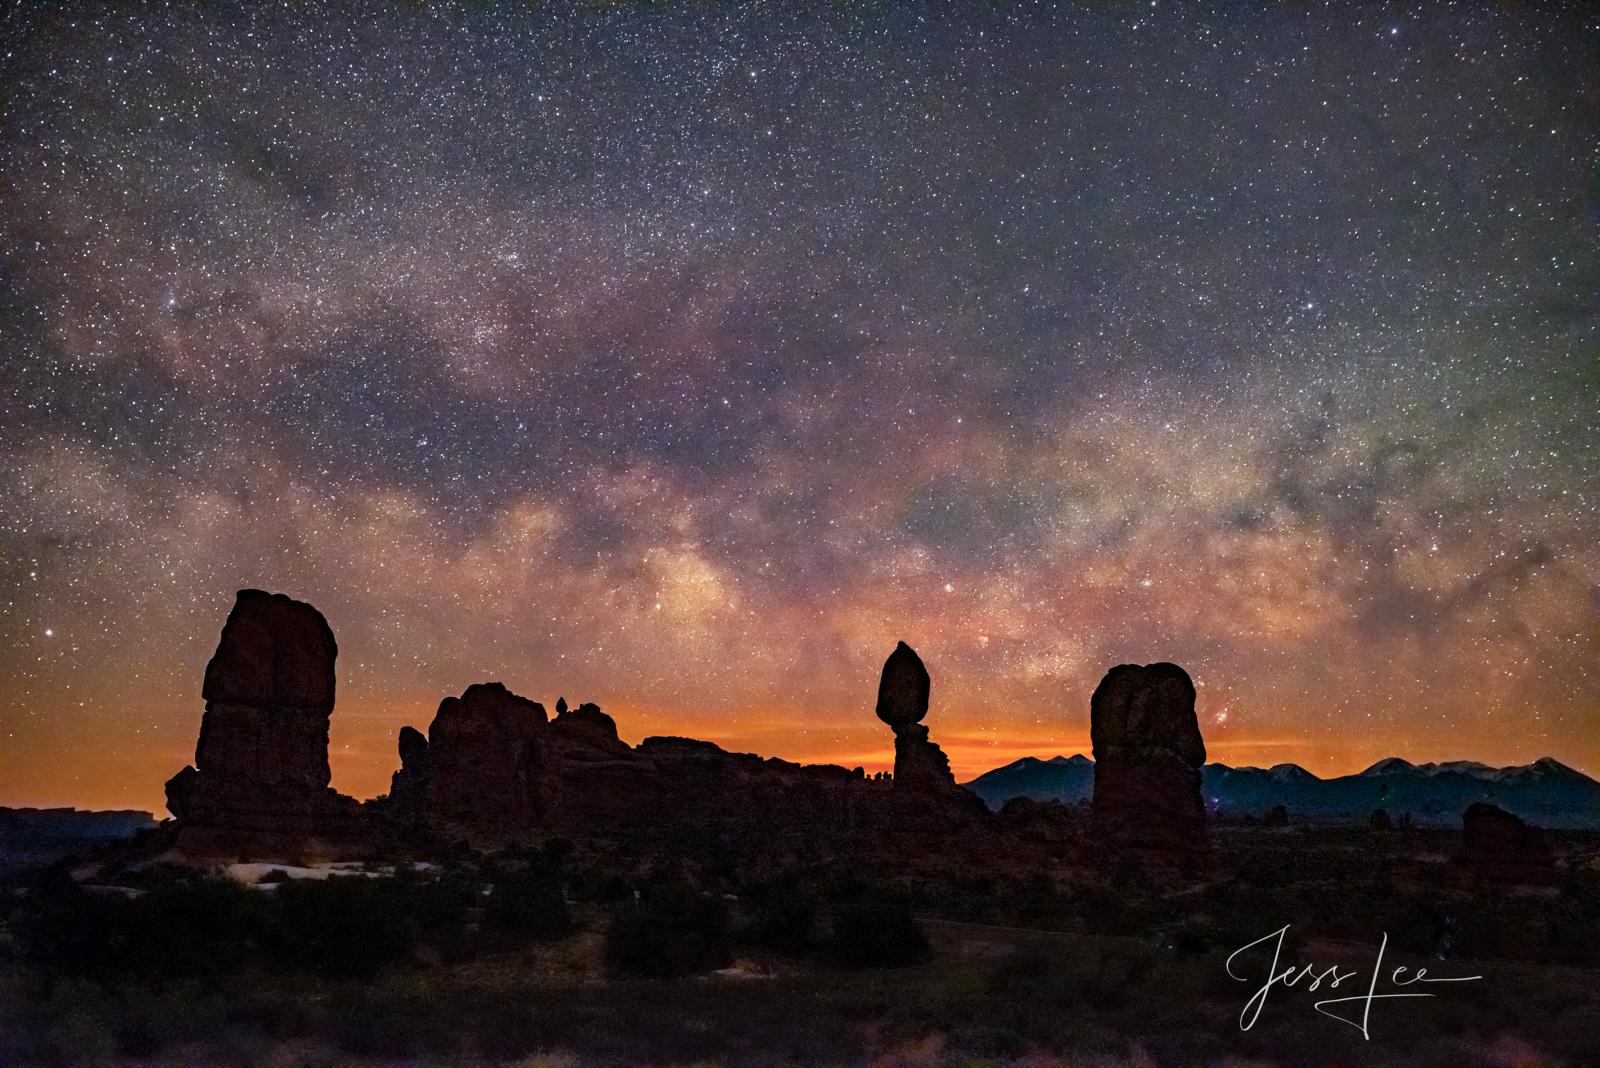 FINE ART LIMITED EDITION NIGHT PHOTO PRINT OF BALANCE ROCK ARCHES NATIONAL PARK Arches Landscape photo print of Utah Landscape...